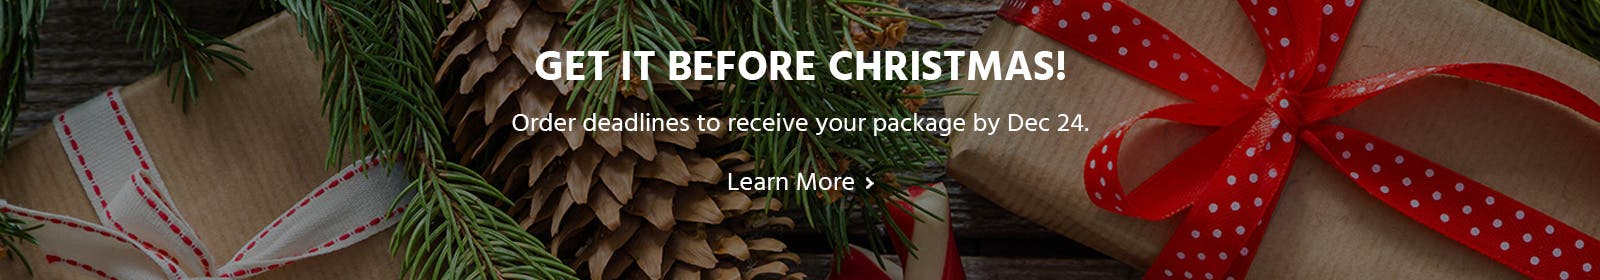 Giet it before christmas! Order deadlines to receive your package by Dec 24. Learn More>